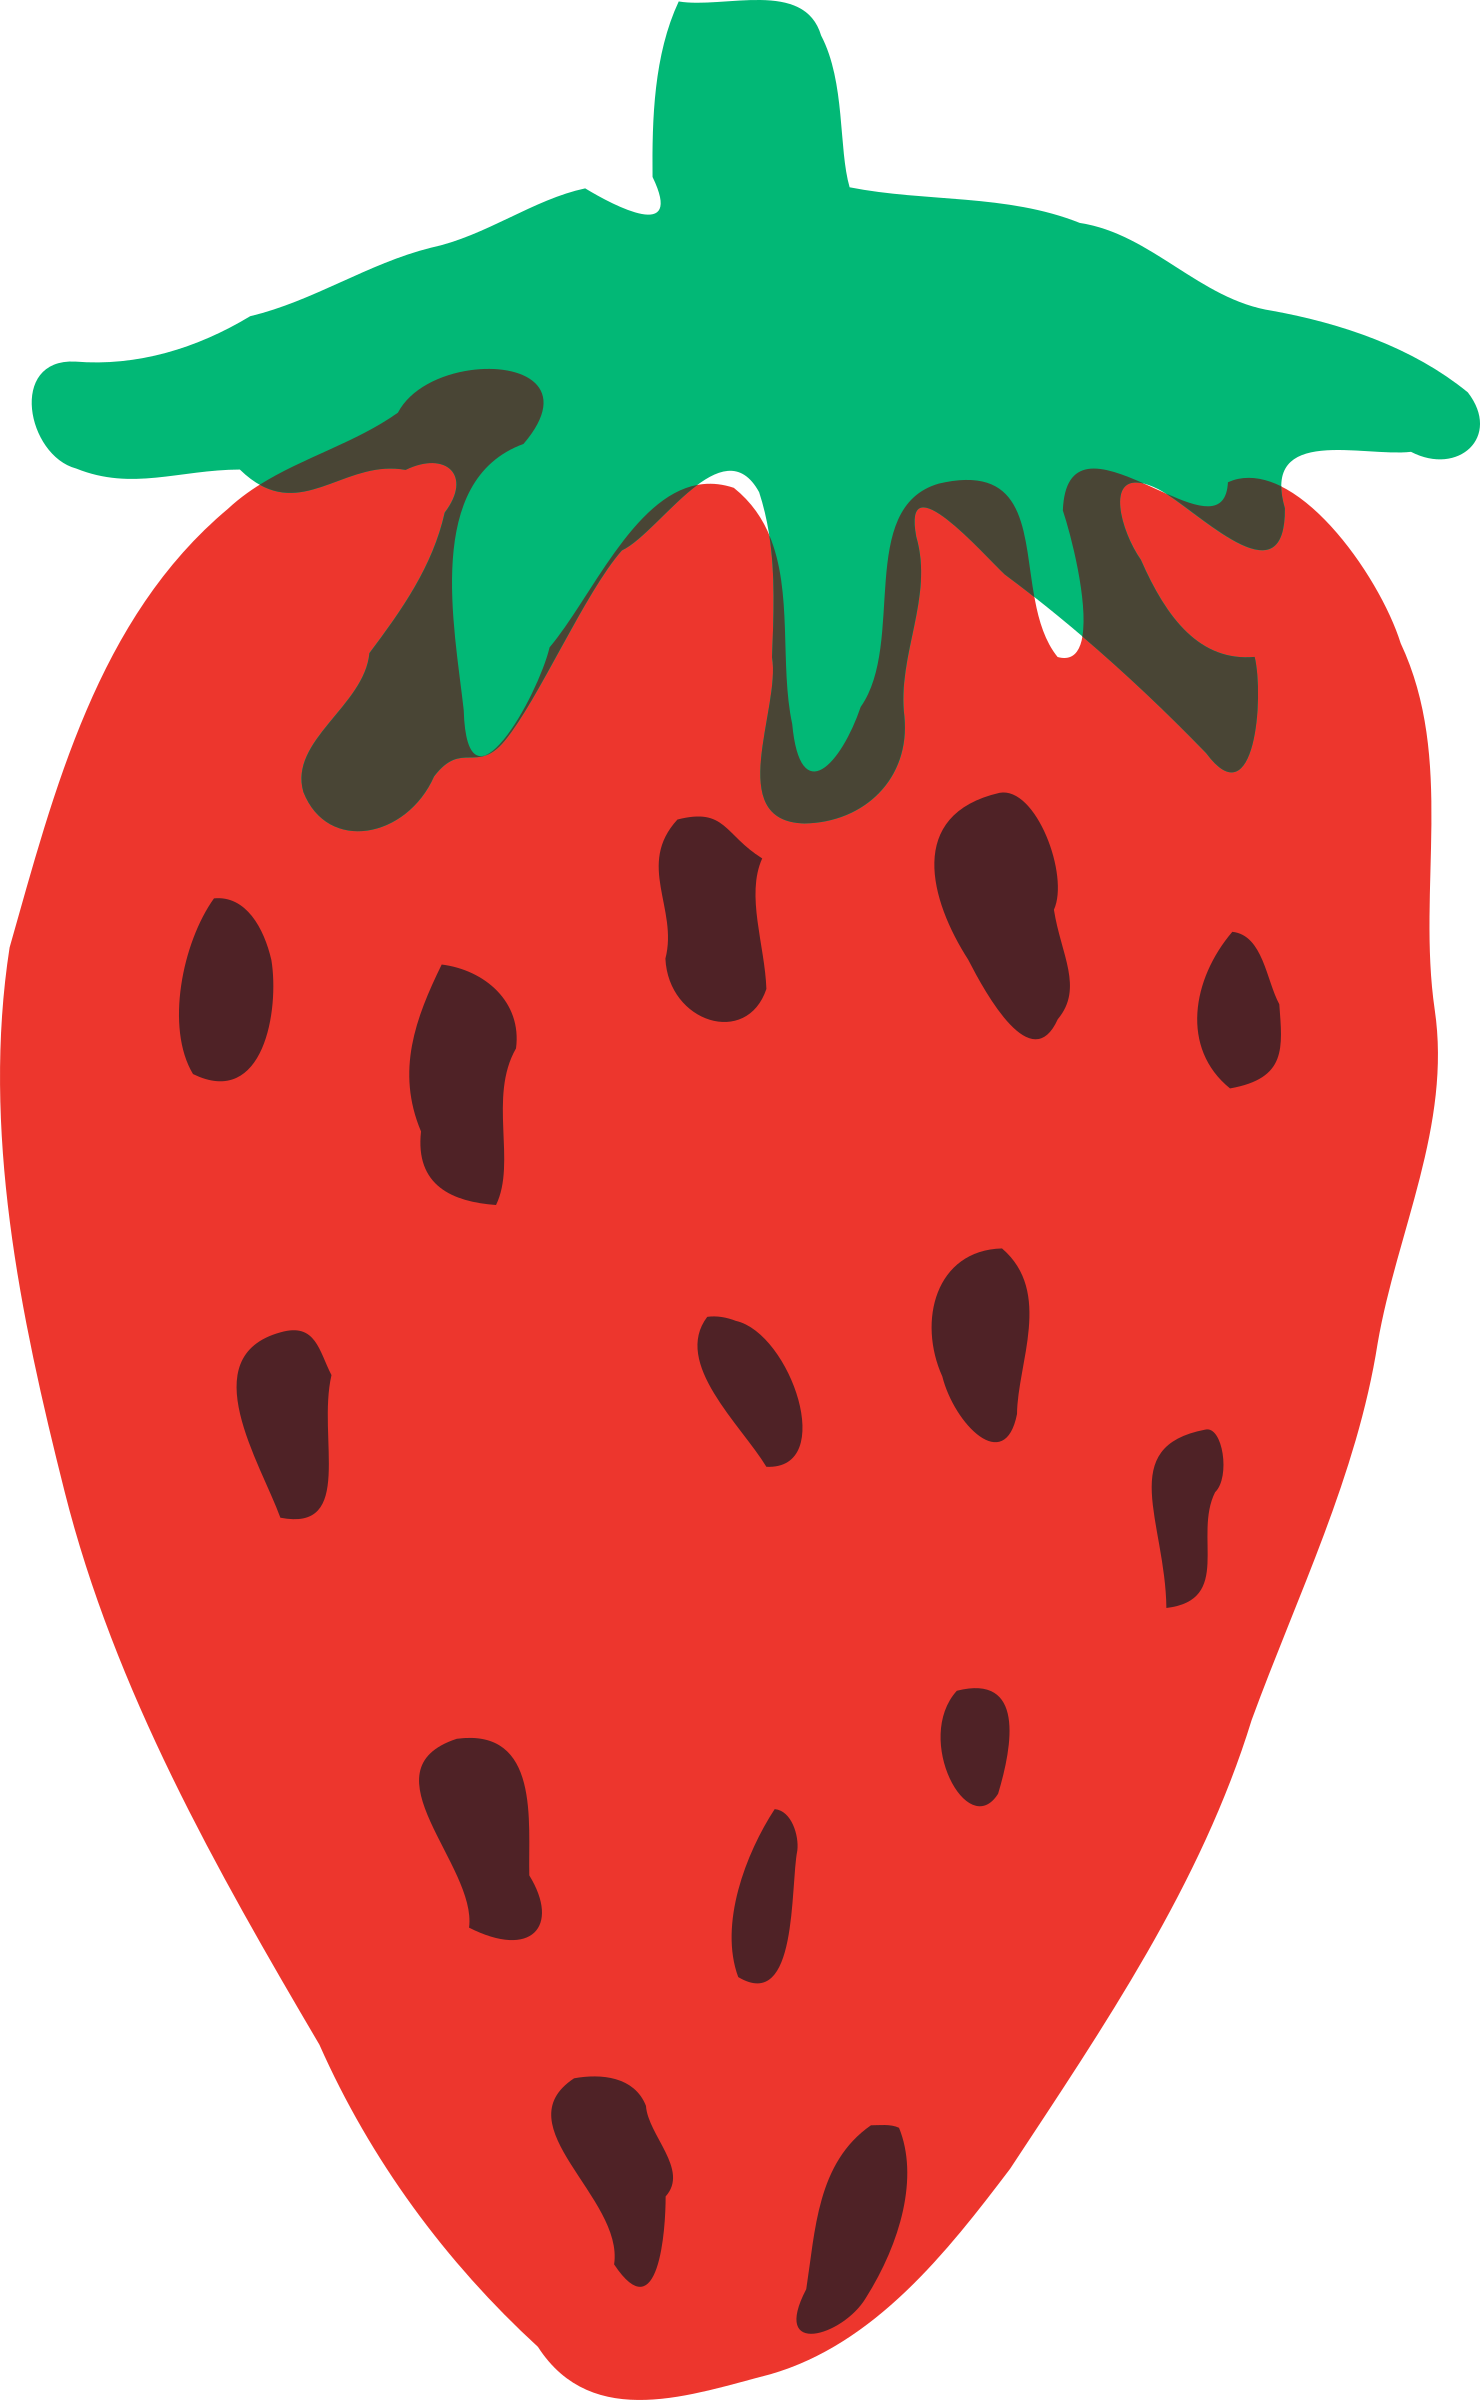 Strawberry heart clipart png free Clipart - strawberry png free